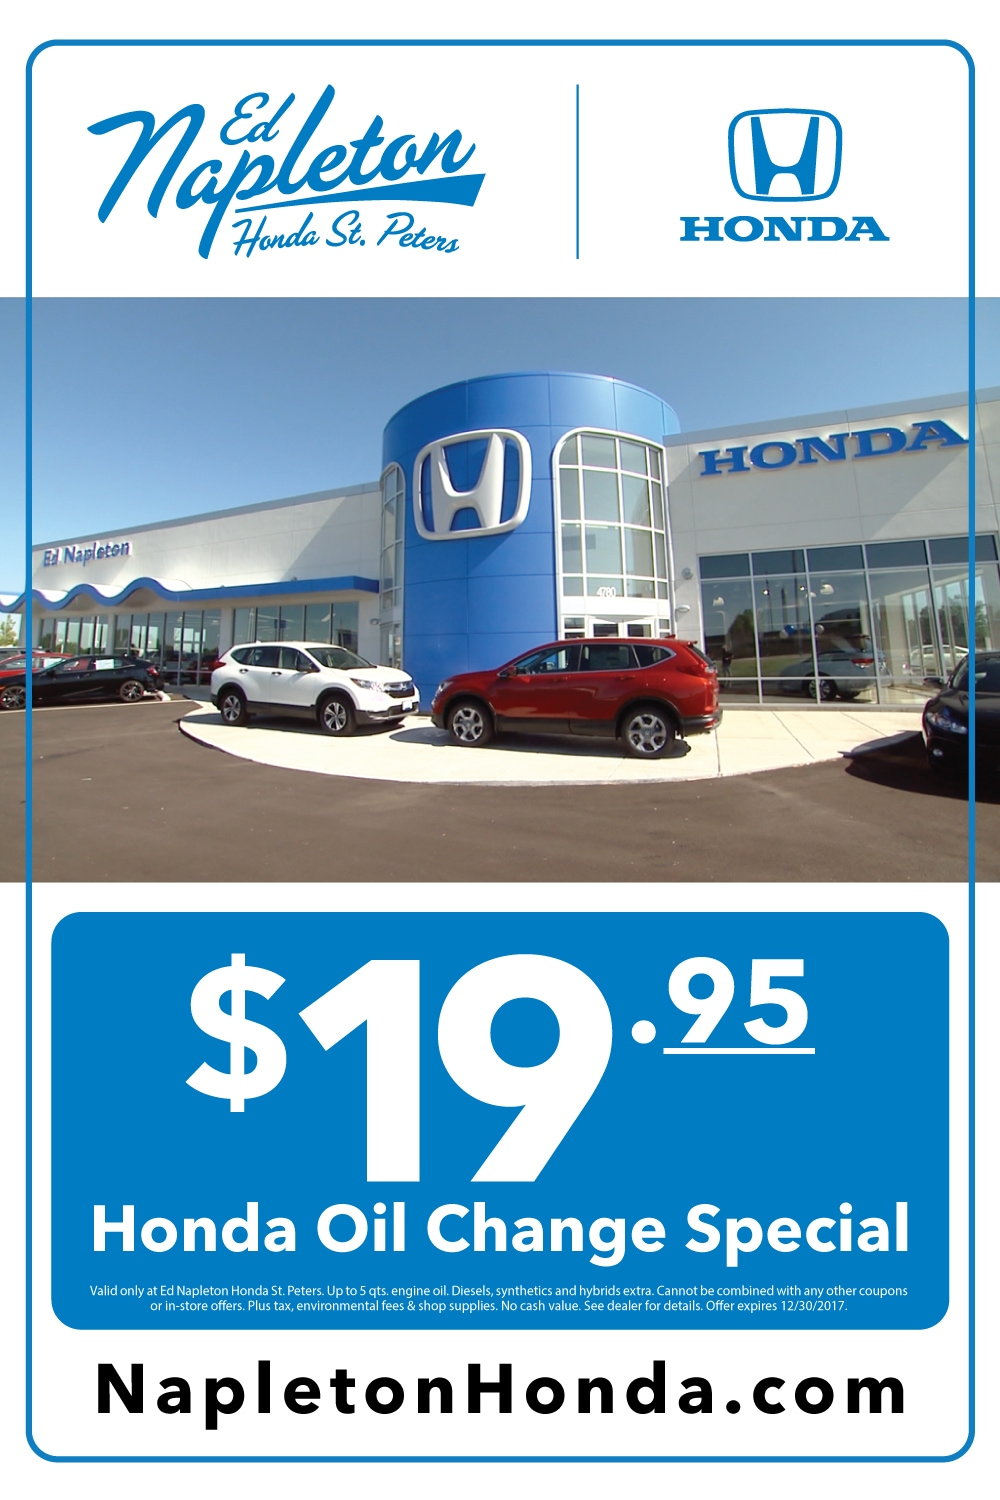 Ed Napleton Honda | New Honda dealership in St. Peters, MO 63376